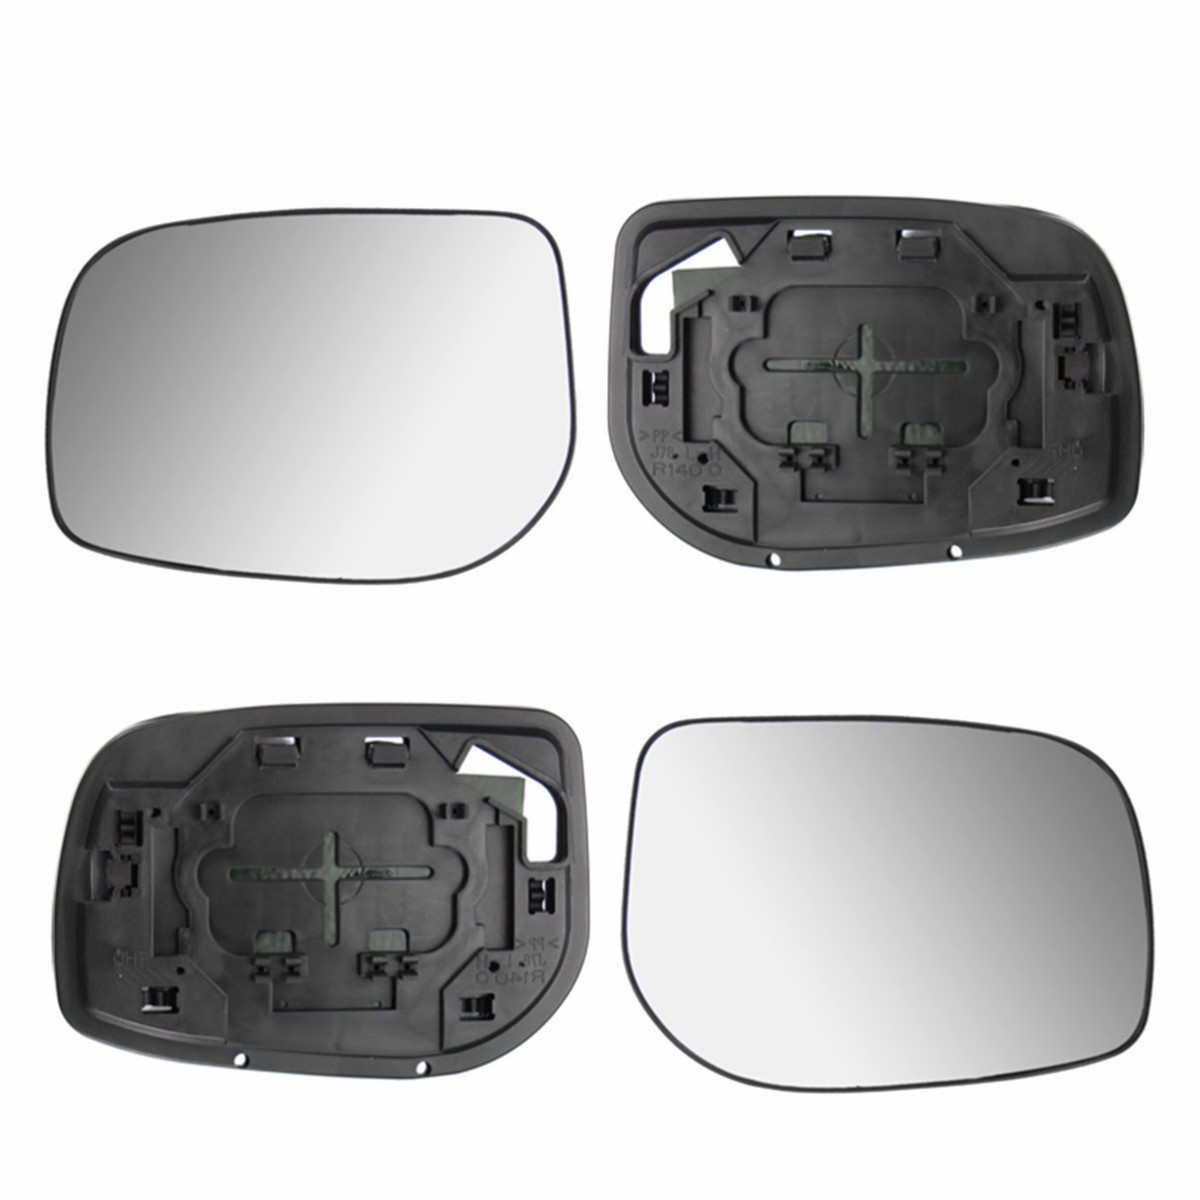 2x Car Rear View Side Wing Mirror Glass Silver Nonheated & Base Fit For Toyota Yaris 2006-2009 Door RearView Mirror